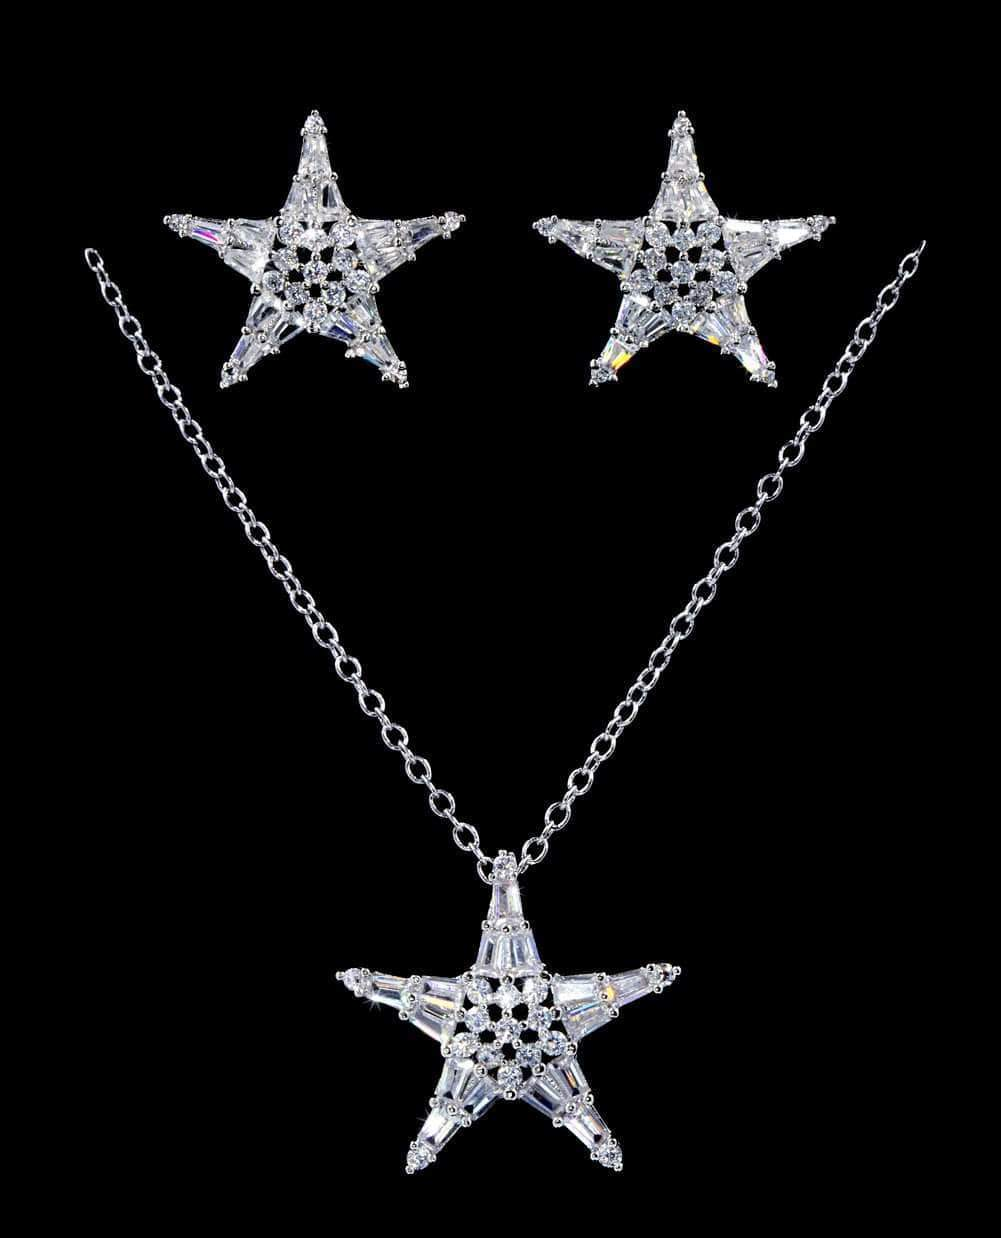 Necklace Sets - Low price #16822 - Geometric Star CZ Necklace and Earring Set